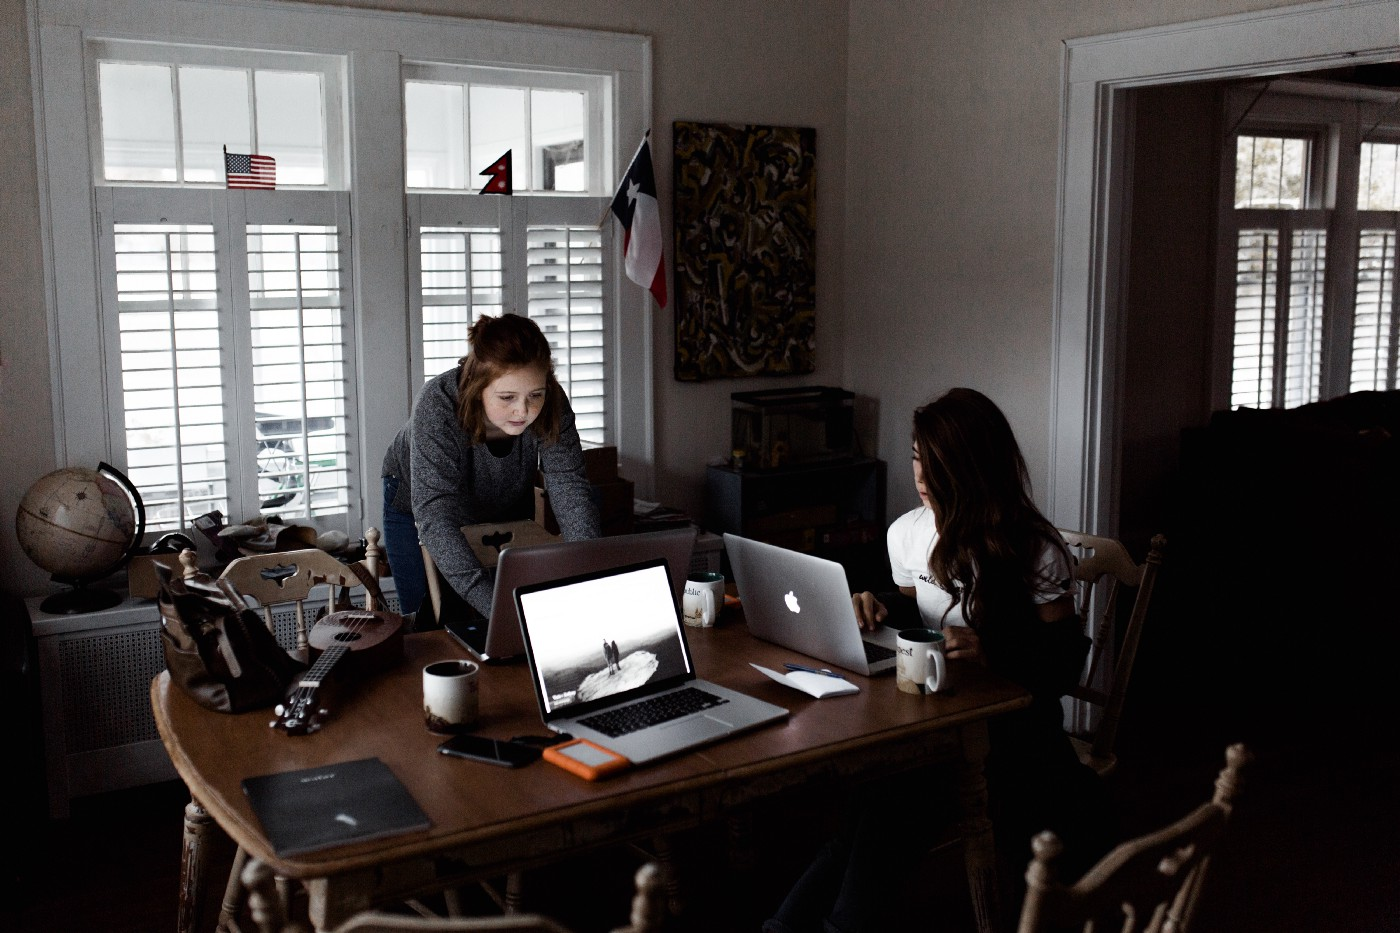 Two caucasian women are at a large wooden dining table inside a domestic home. The woman to the right of the table has long, black wavy hair and is seated while working on her silver laptop. The other woman has short brown hair and is leaning over the table on the far side of it, also working on her laptop. There is a third laptop open on the table and is not in use by anyone.